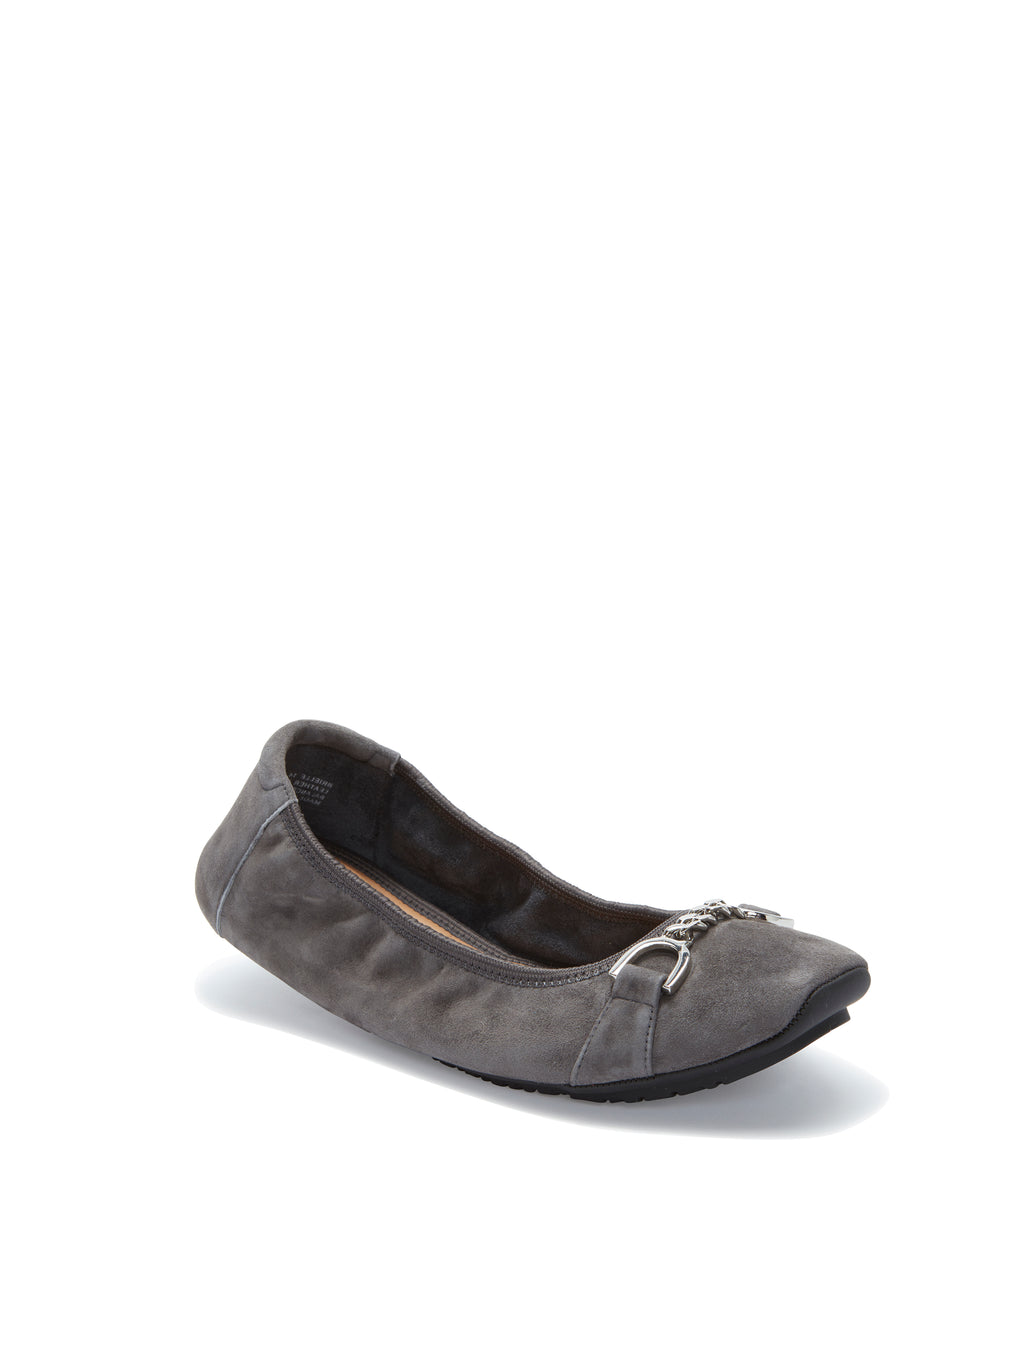 Brielle Charcoal Suede -  FLAT - ...me Too